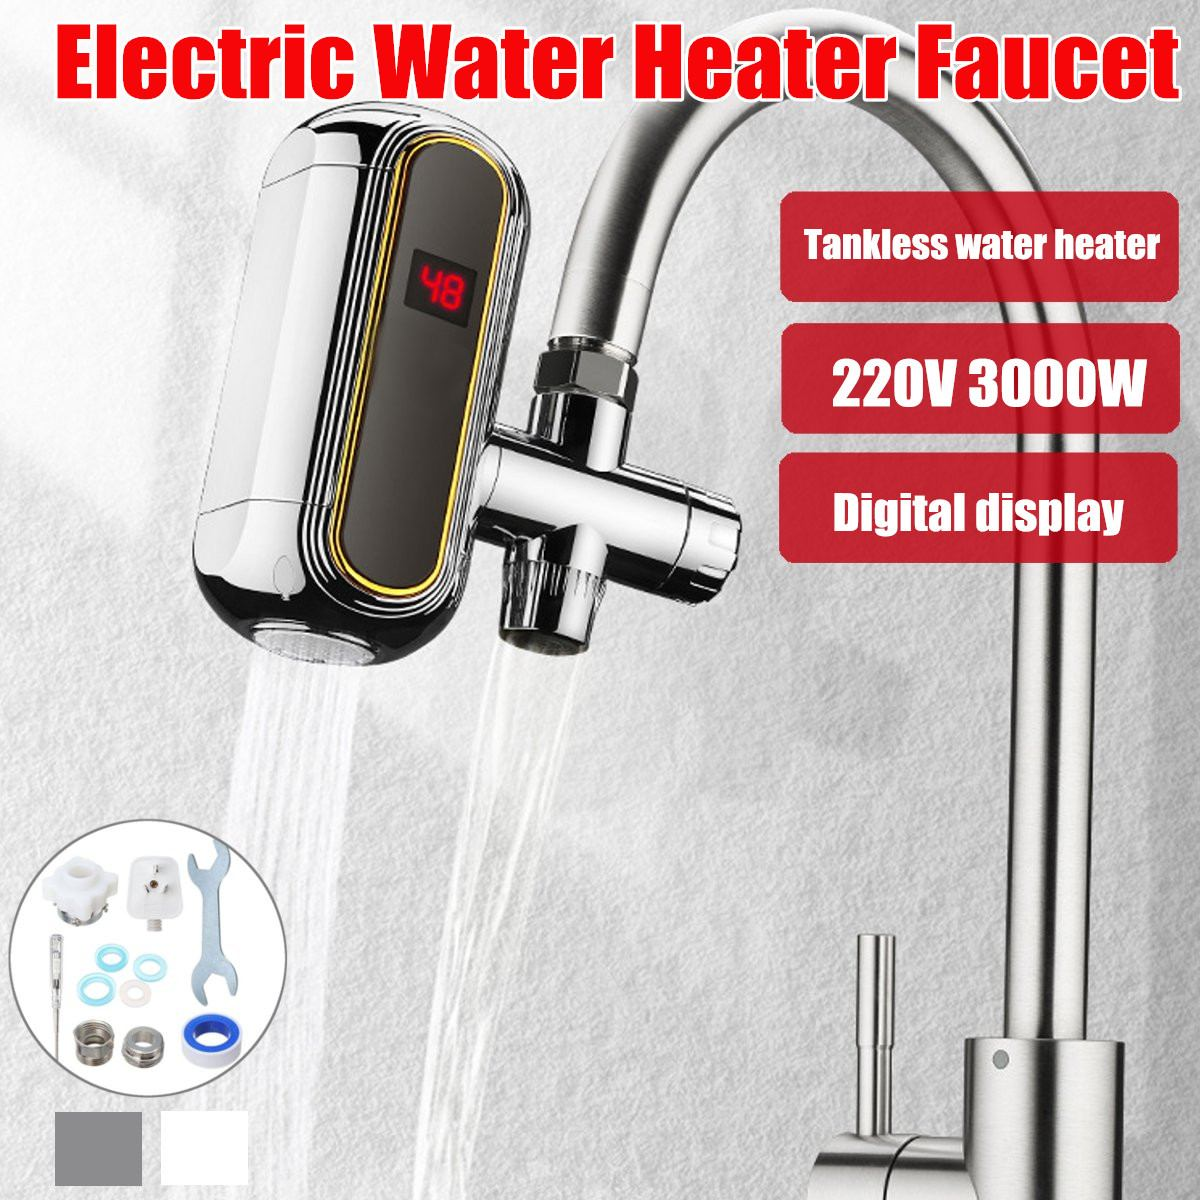 220V 3000W Tankless Electric Water Heater Faucet Electric Kitchen Water Heater Tap LCD Display 3s Instant Heating